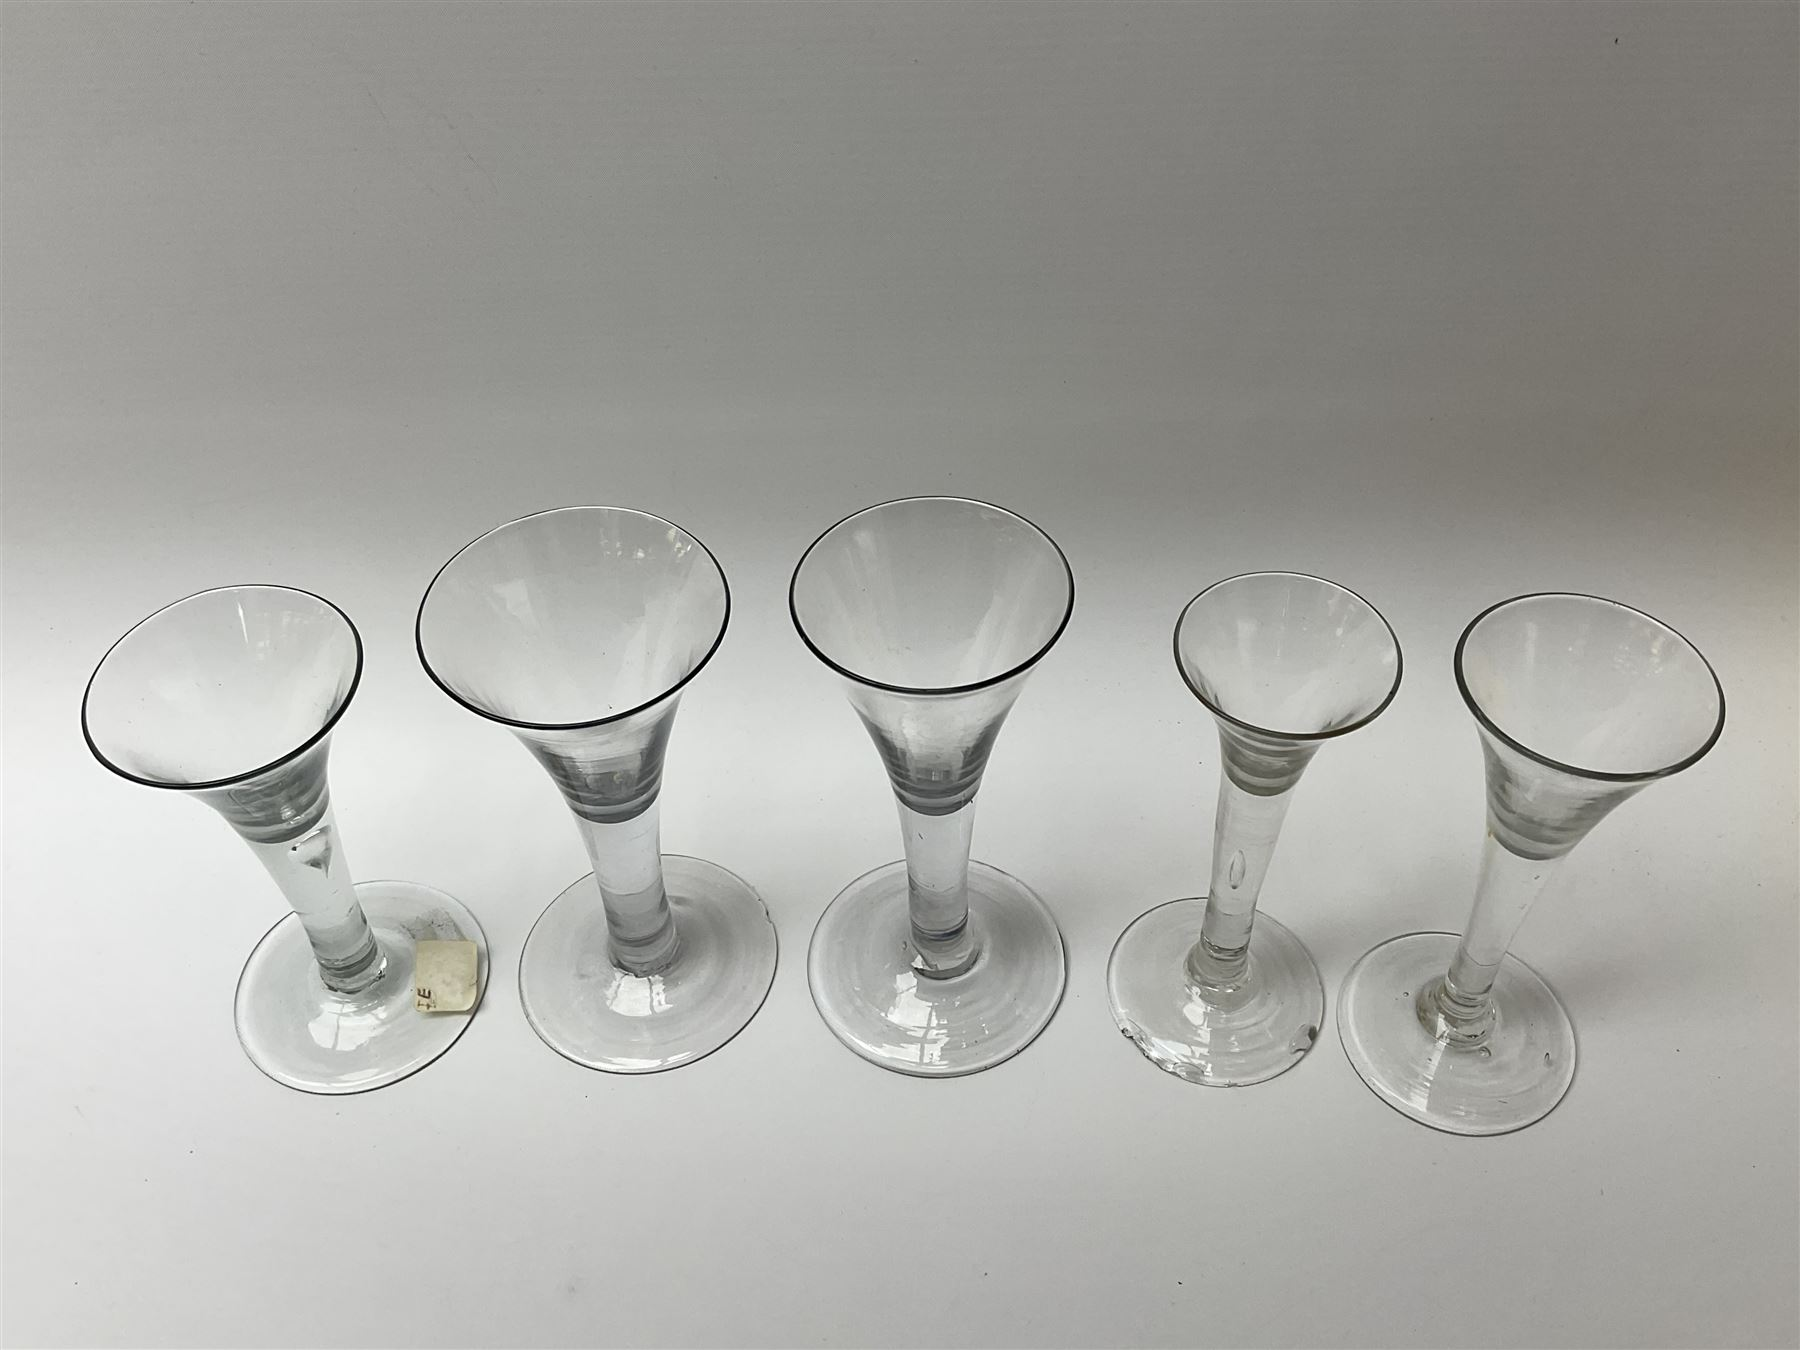 Five 18th century drinking glasses - Image 3 of 3